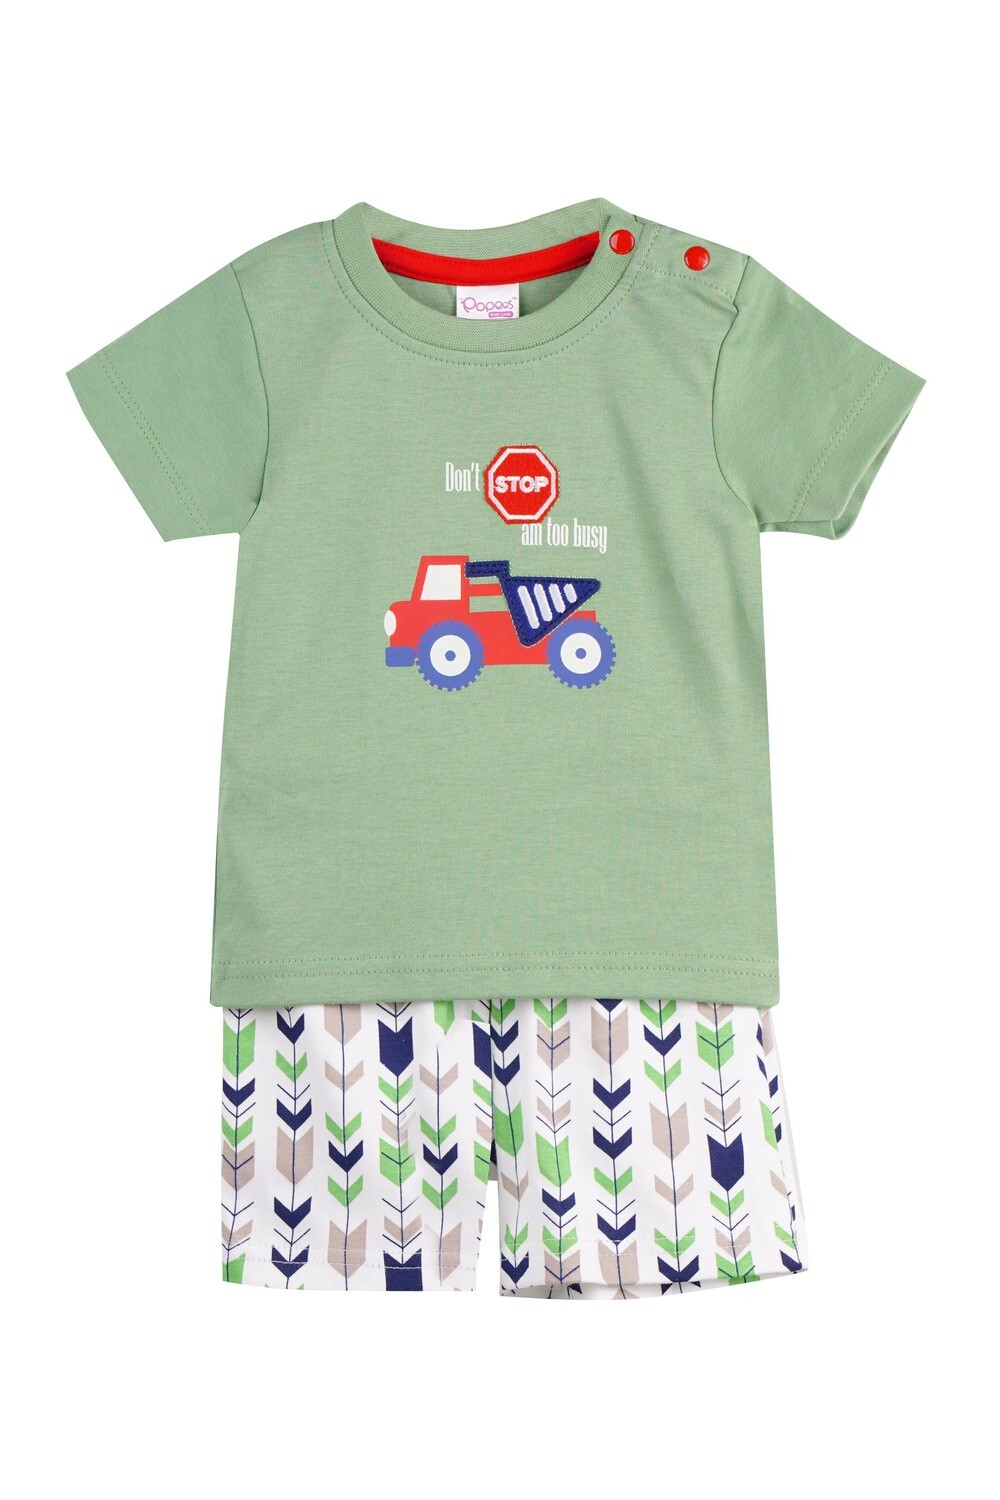 WARREN Green Top and Trouser Full sleeve for Baby Boys